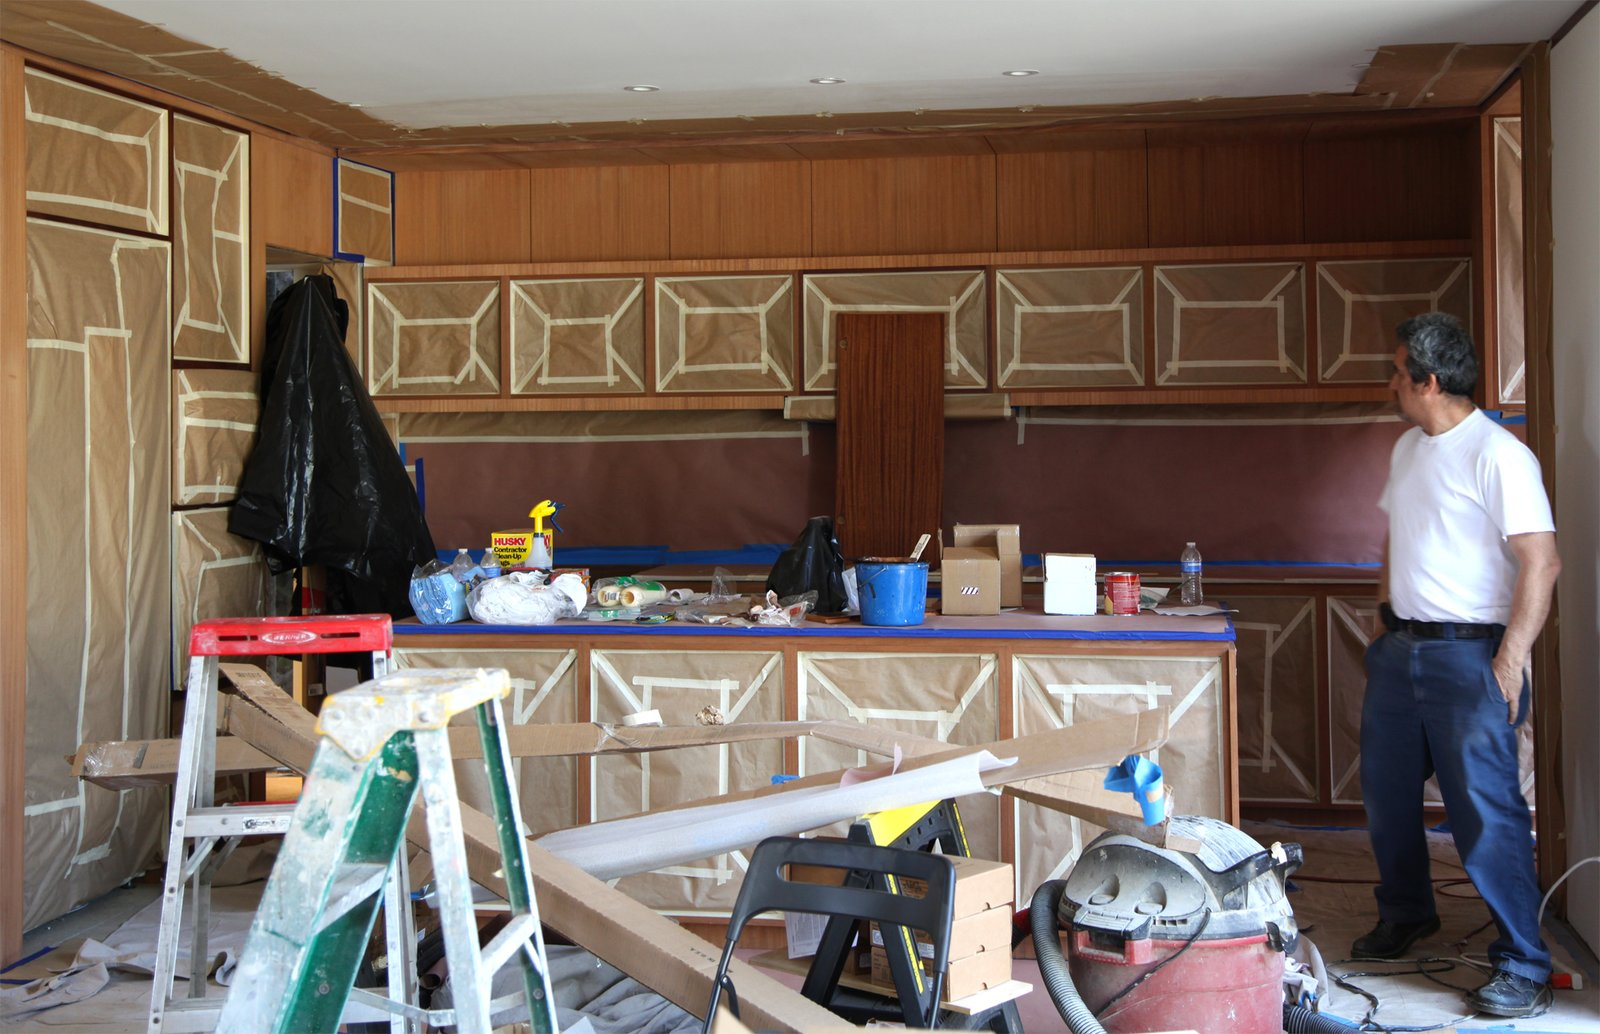 Preparing to stain the kitchen cabinets. The ceiling drywall and all cabinet openings are papered and taped to keep the stain contained..  Photo 13 of 17 in Dwell Home Venice: Part 18